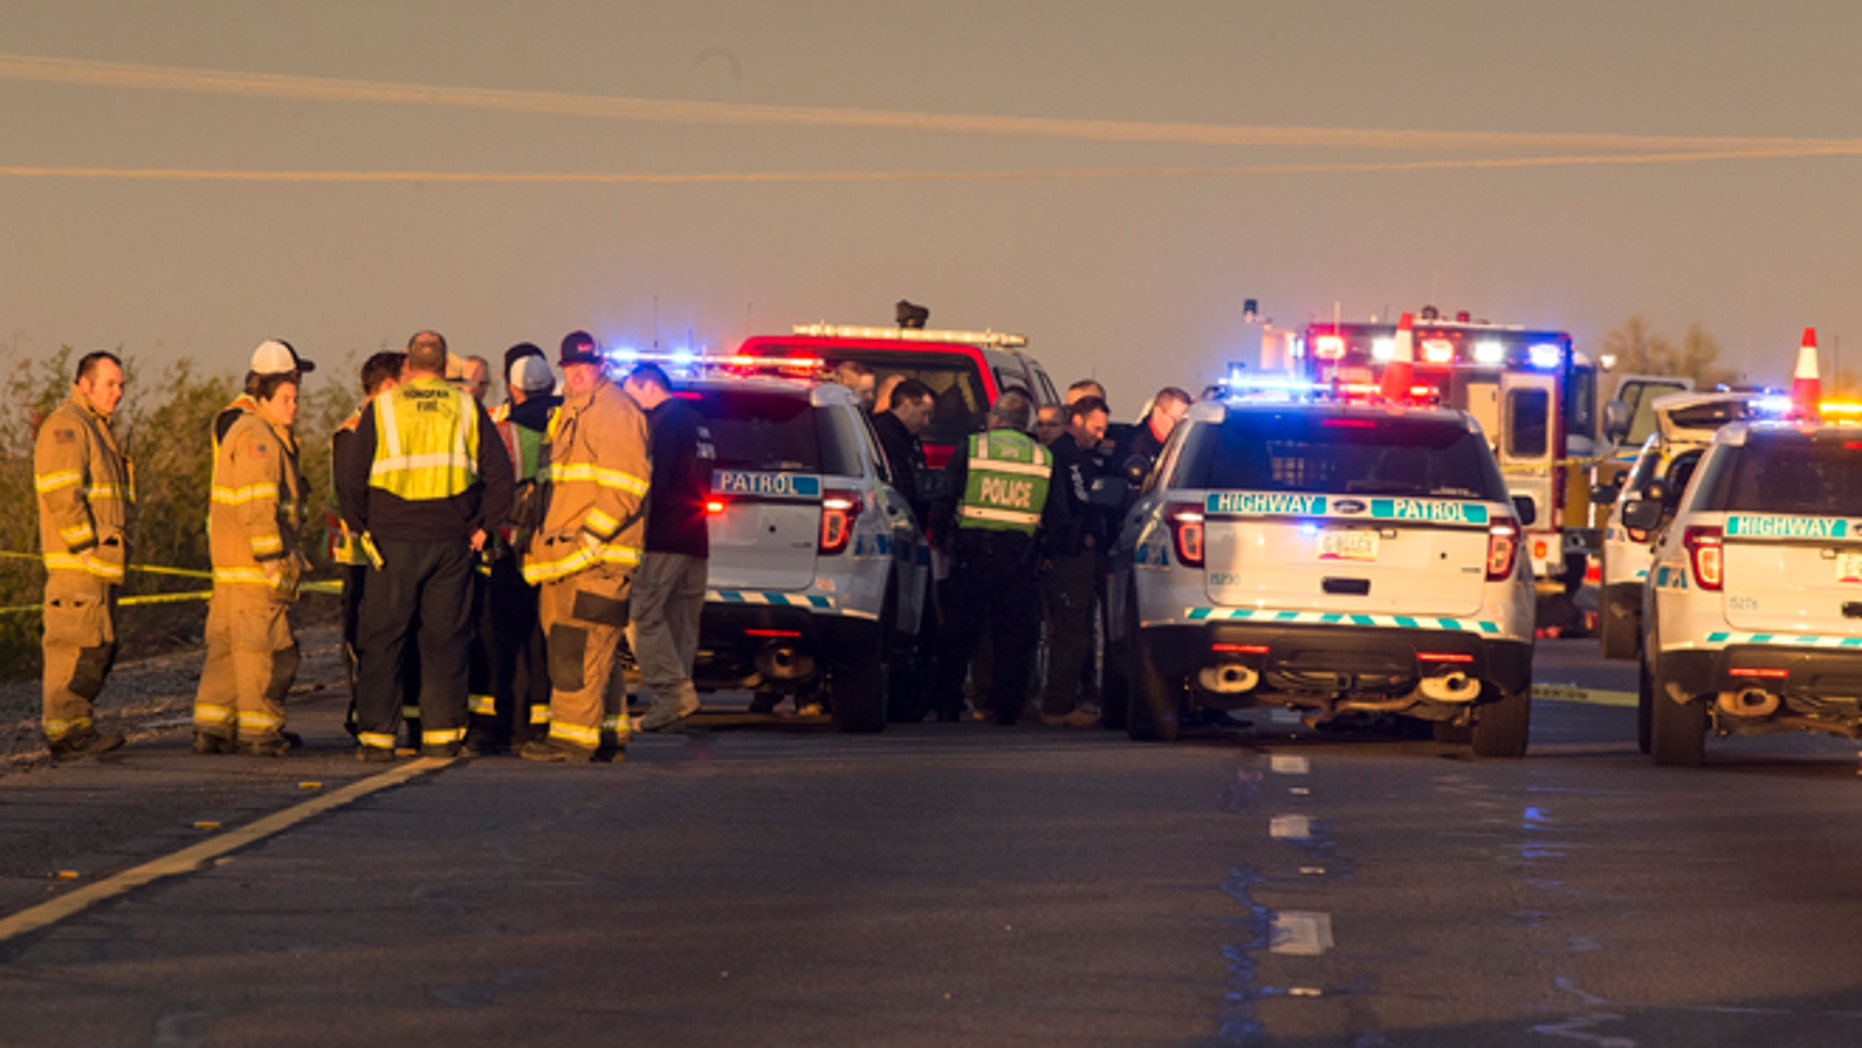 Emergency personnel gather at the scene where an Arizona Department of Public Safety trooper was shot, Thursday, Jan. 12, 2017, at the scene of a rollover accident on Interstate 10 near Tonopah, Ariz.